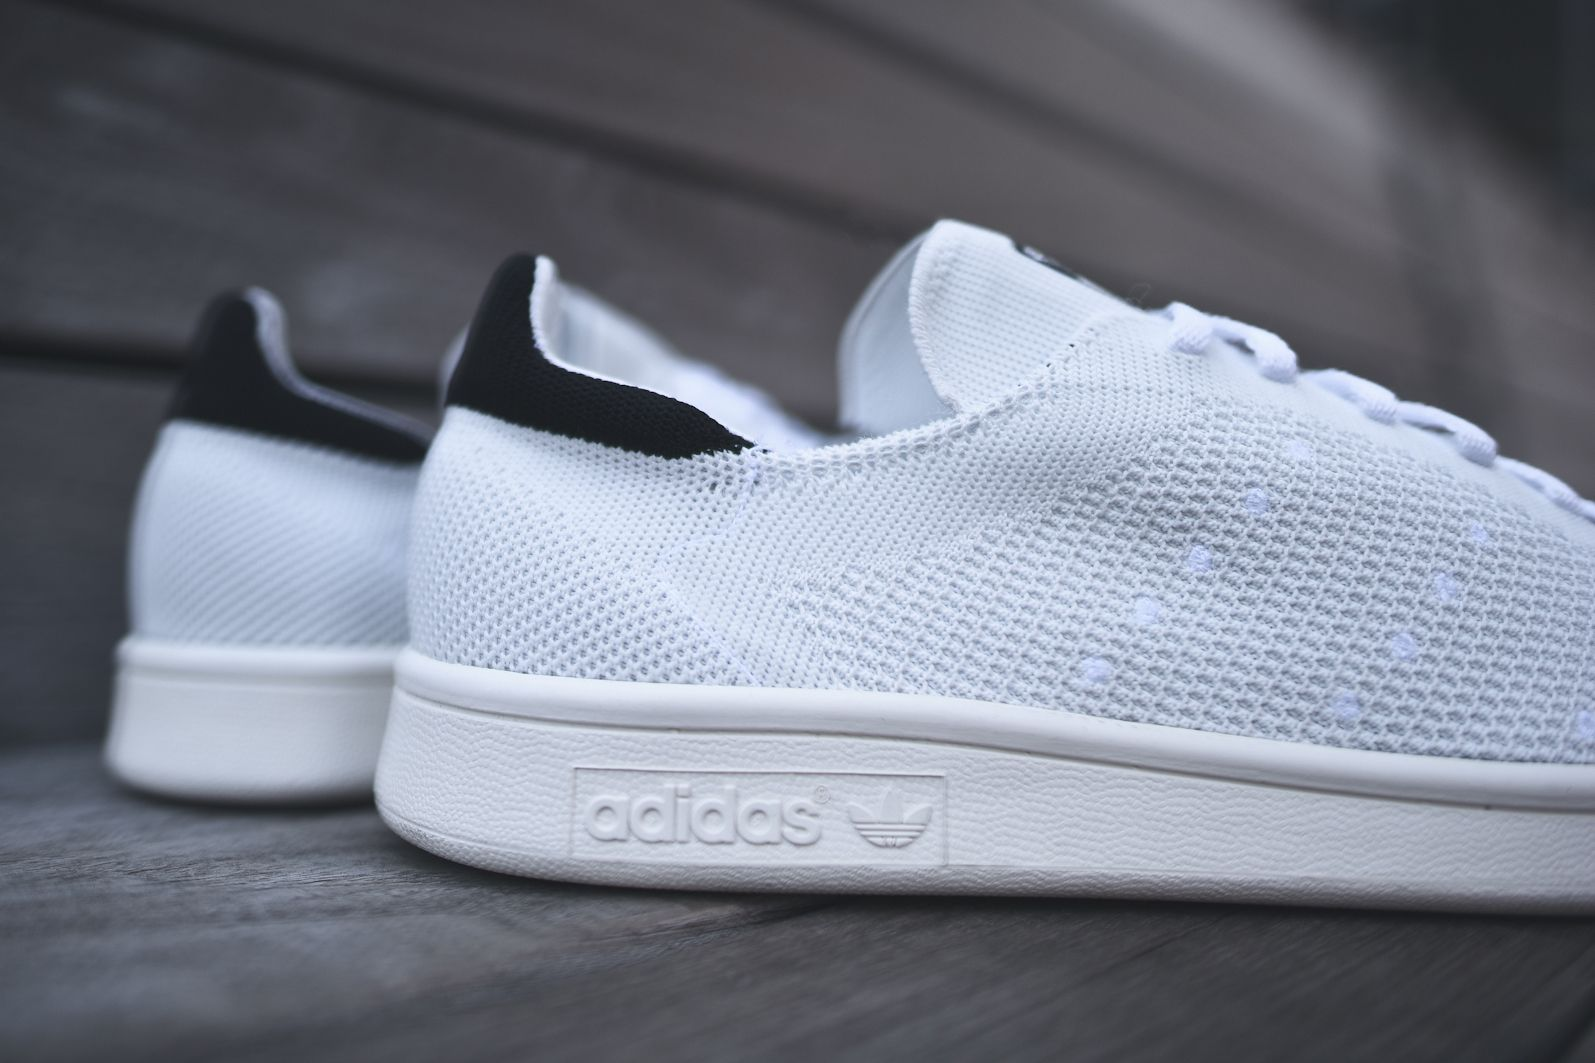 competitive price 3d1ef 375c4 adidas Consortium Primeknit Stan Smith - White   Black   KITH NYC   Kith NYC